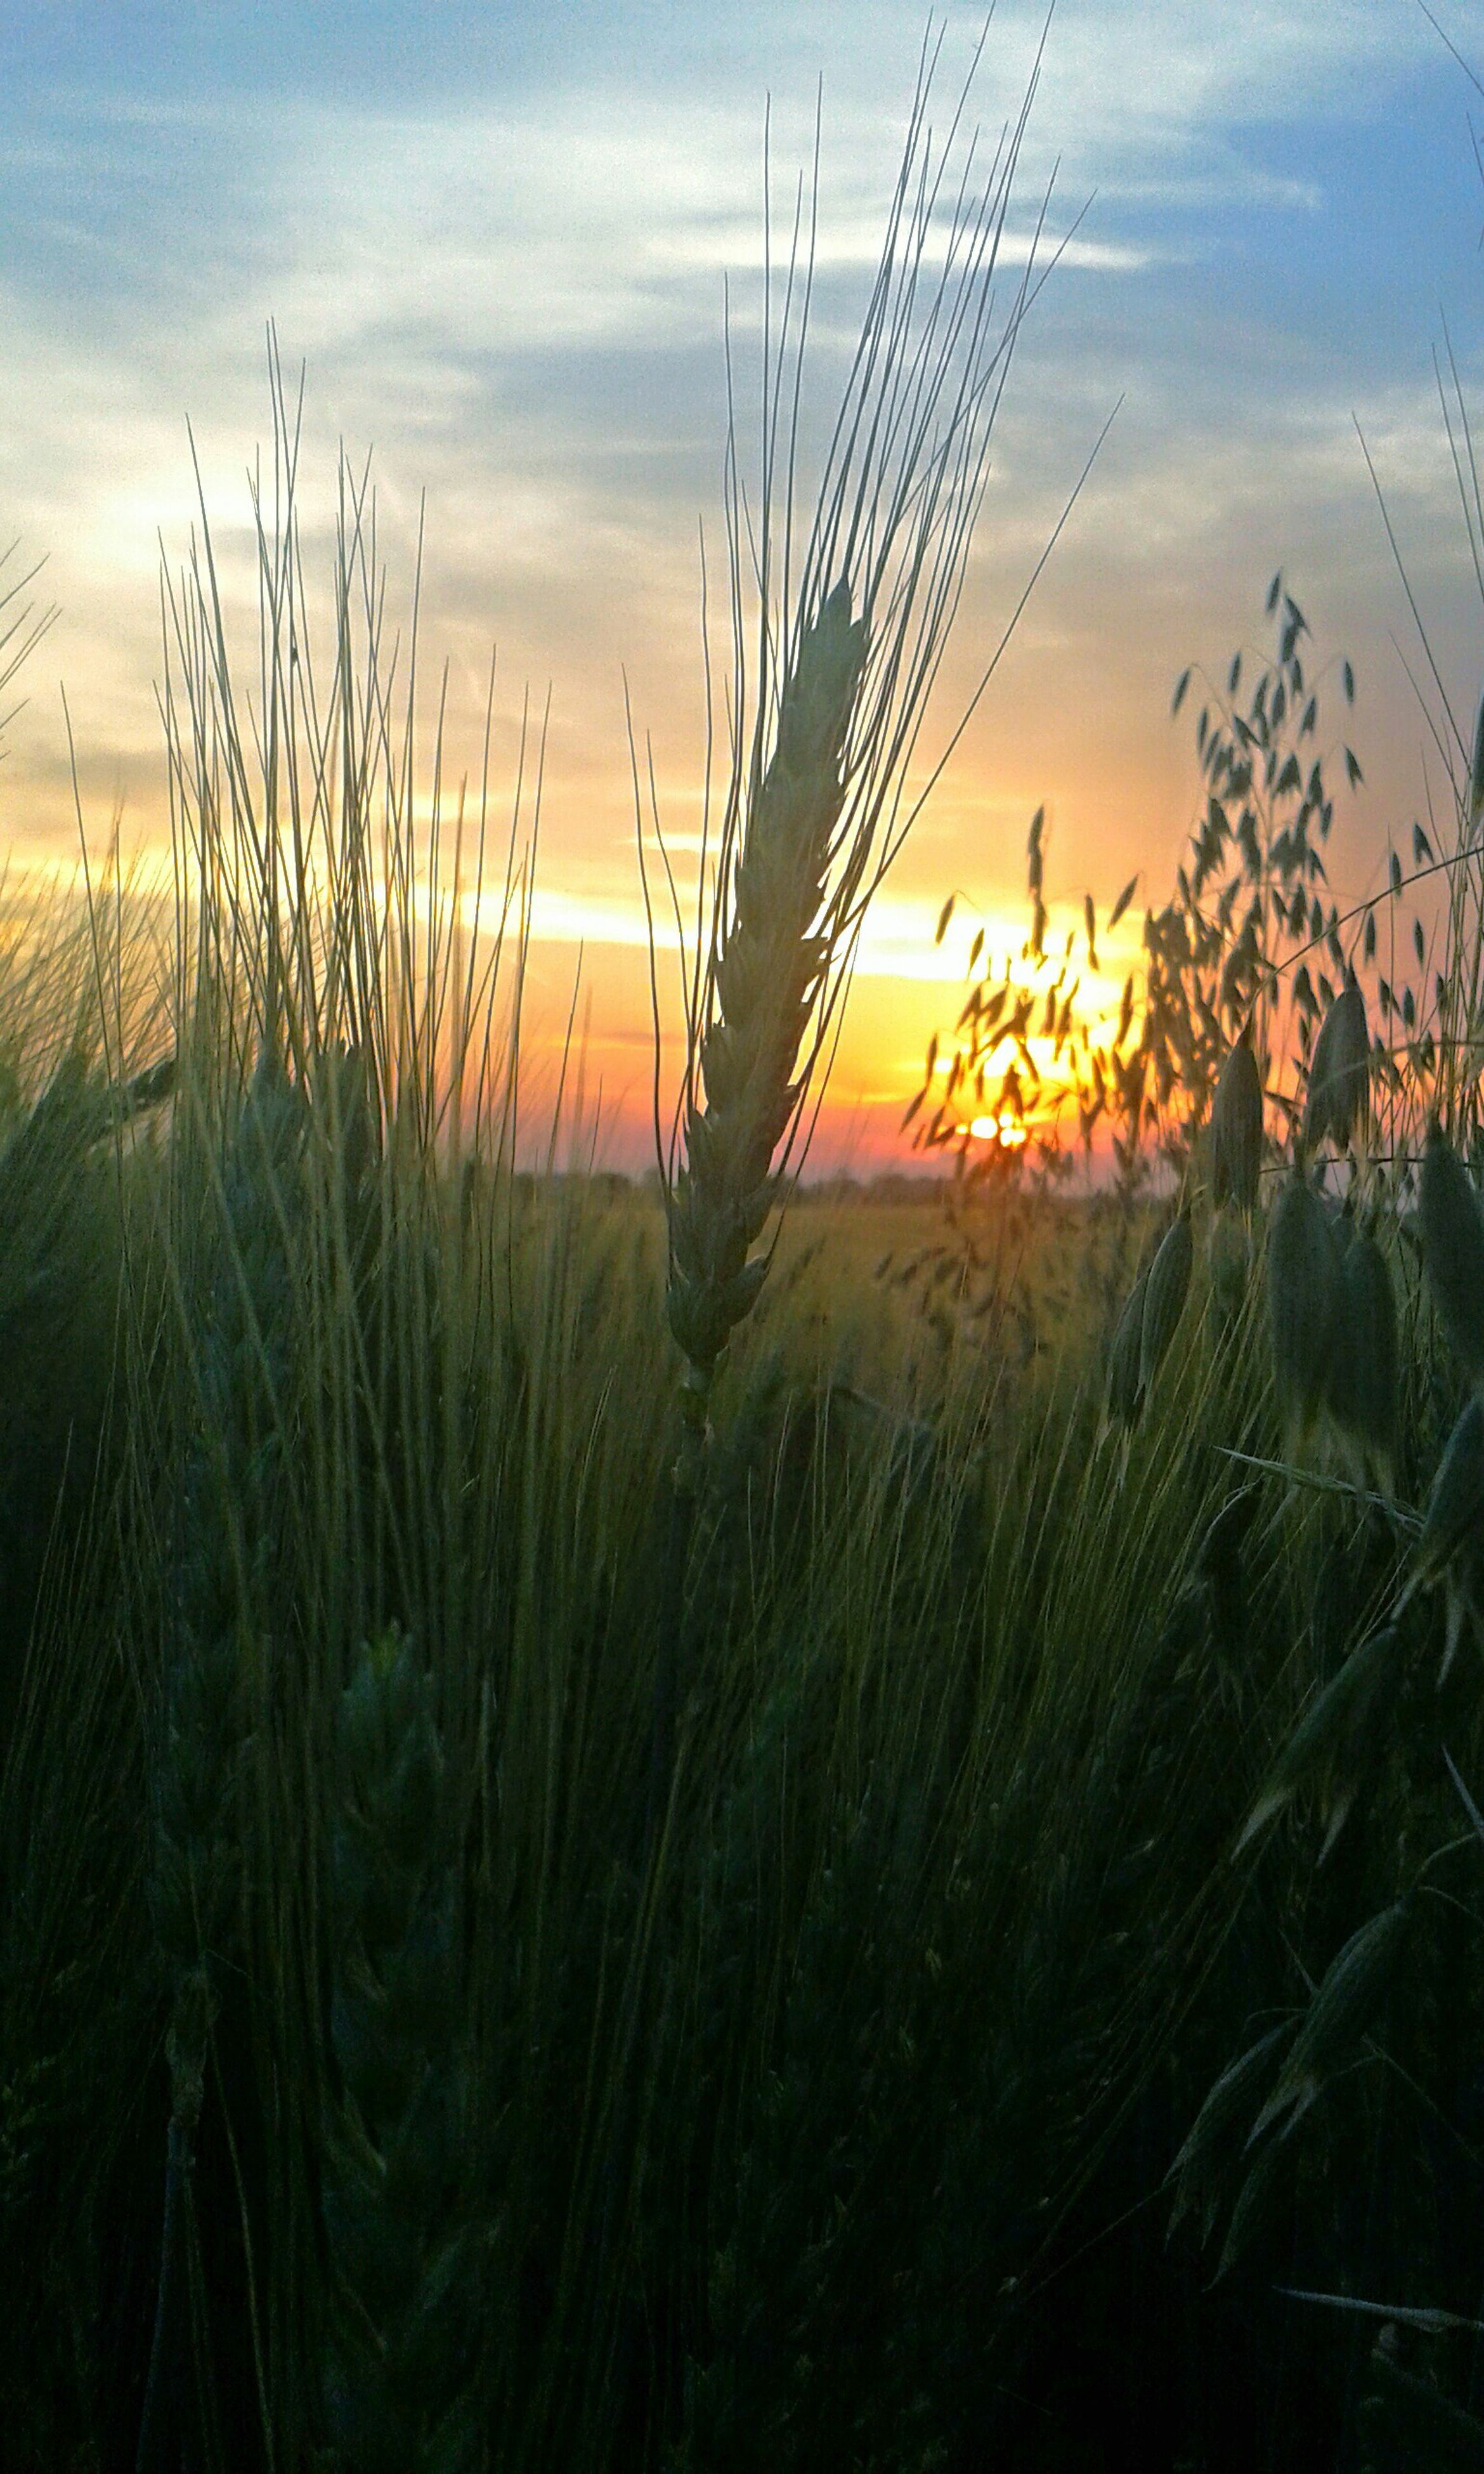 sunset, sky, tranquility, plant, growth, tranquil scene, beauty in nature, field, scenics, nature, grass, orange color, sun, idyllic, landscape, rural scene, silhouette, crop, cloud - sky, agriculture